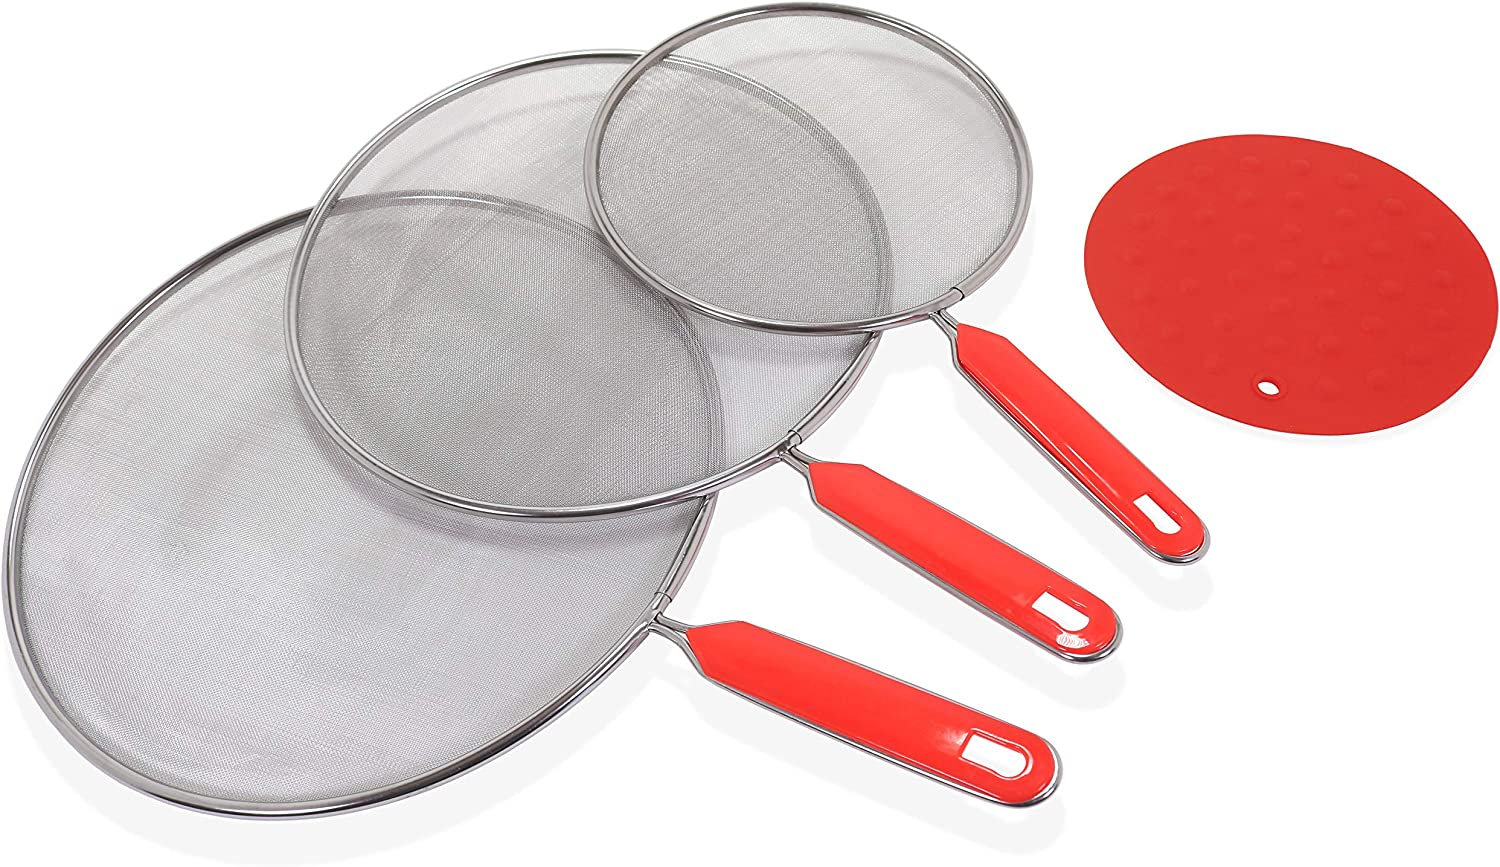 Grease Splatter Screens For Frying Pan (Set of 3 Stainless Steel) by DOMUS724